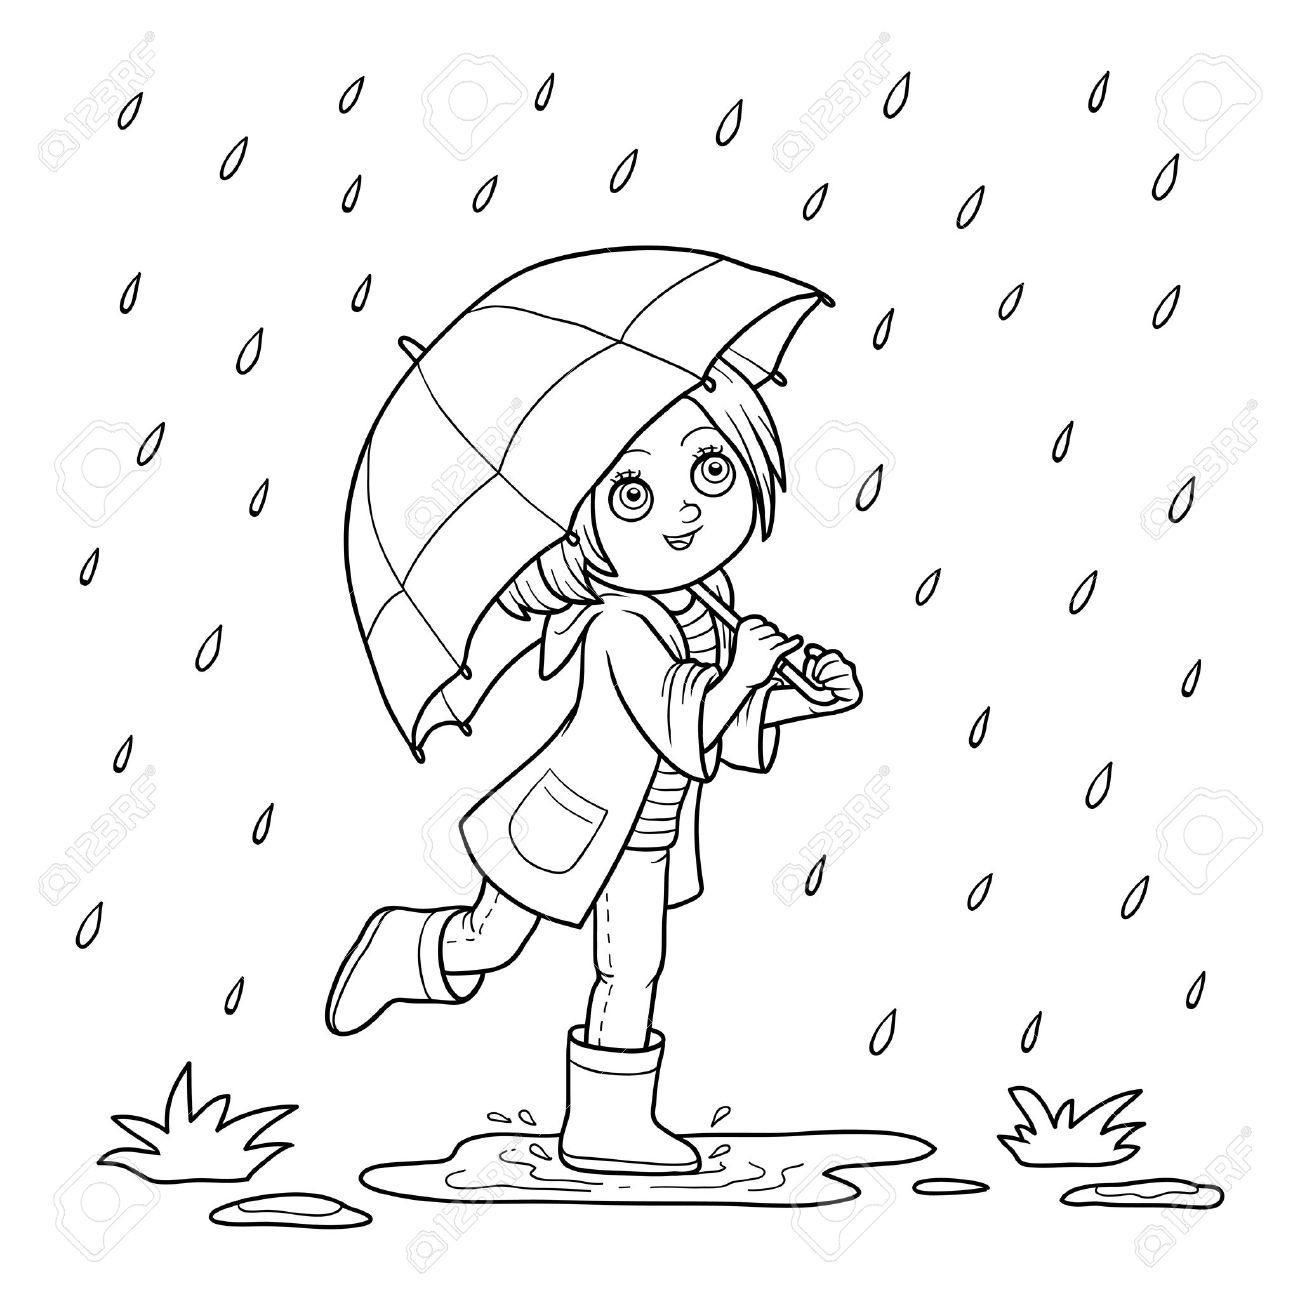 clipart black and white girl with umbrella.